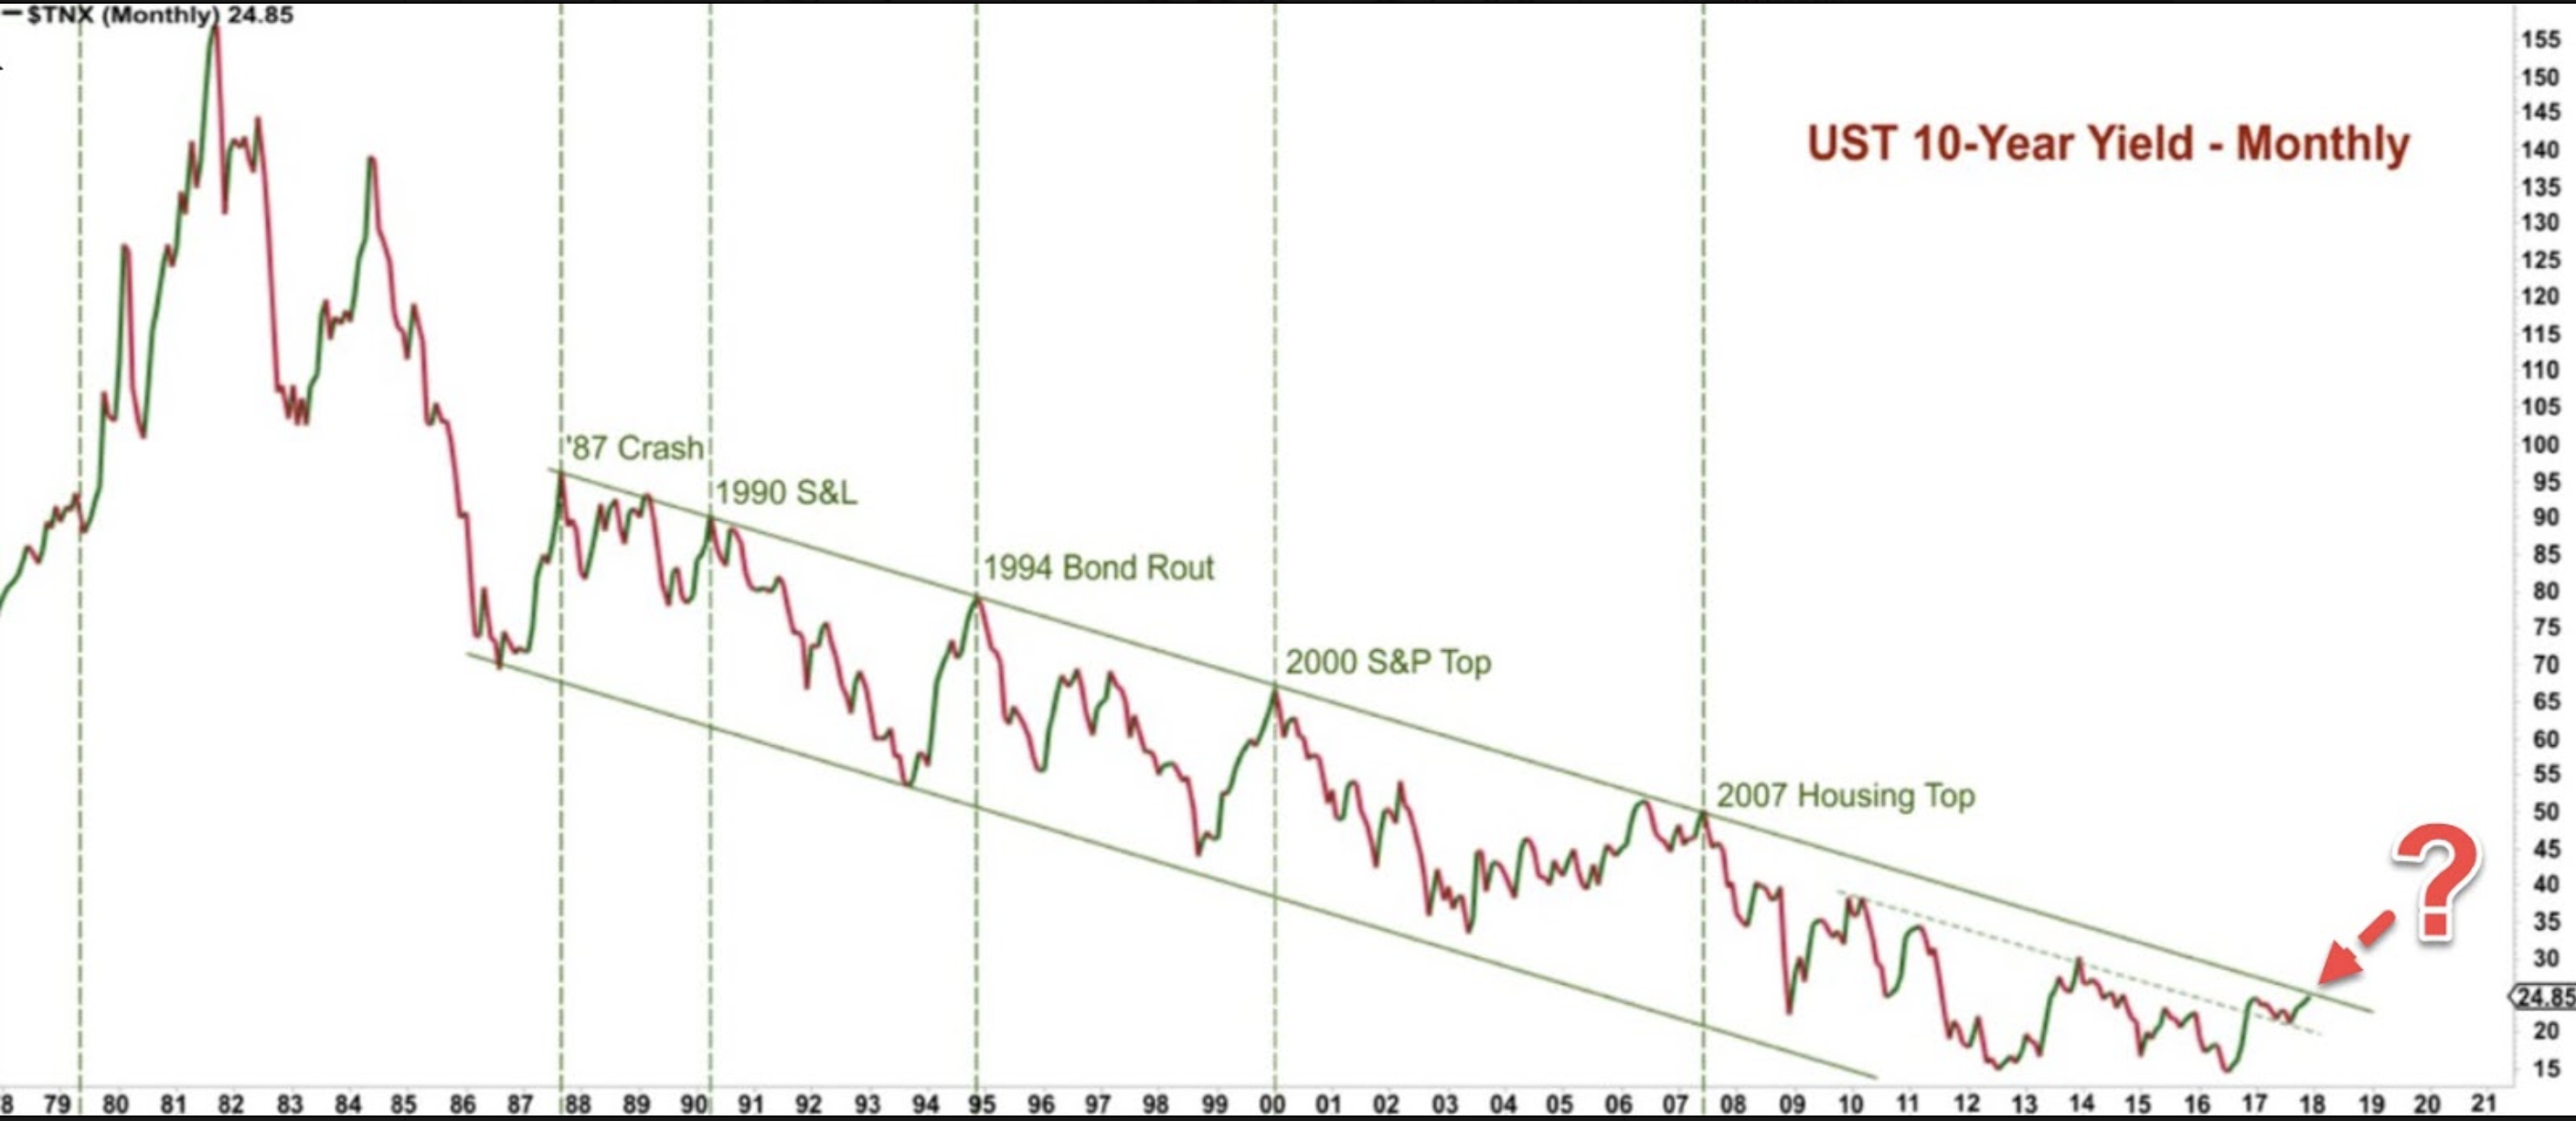 UST 10-Year Yield - Monthly chart